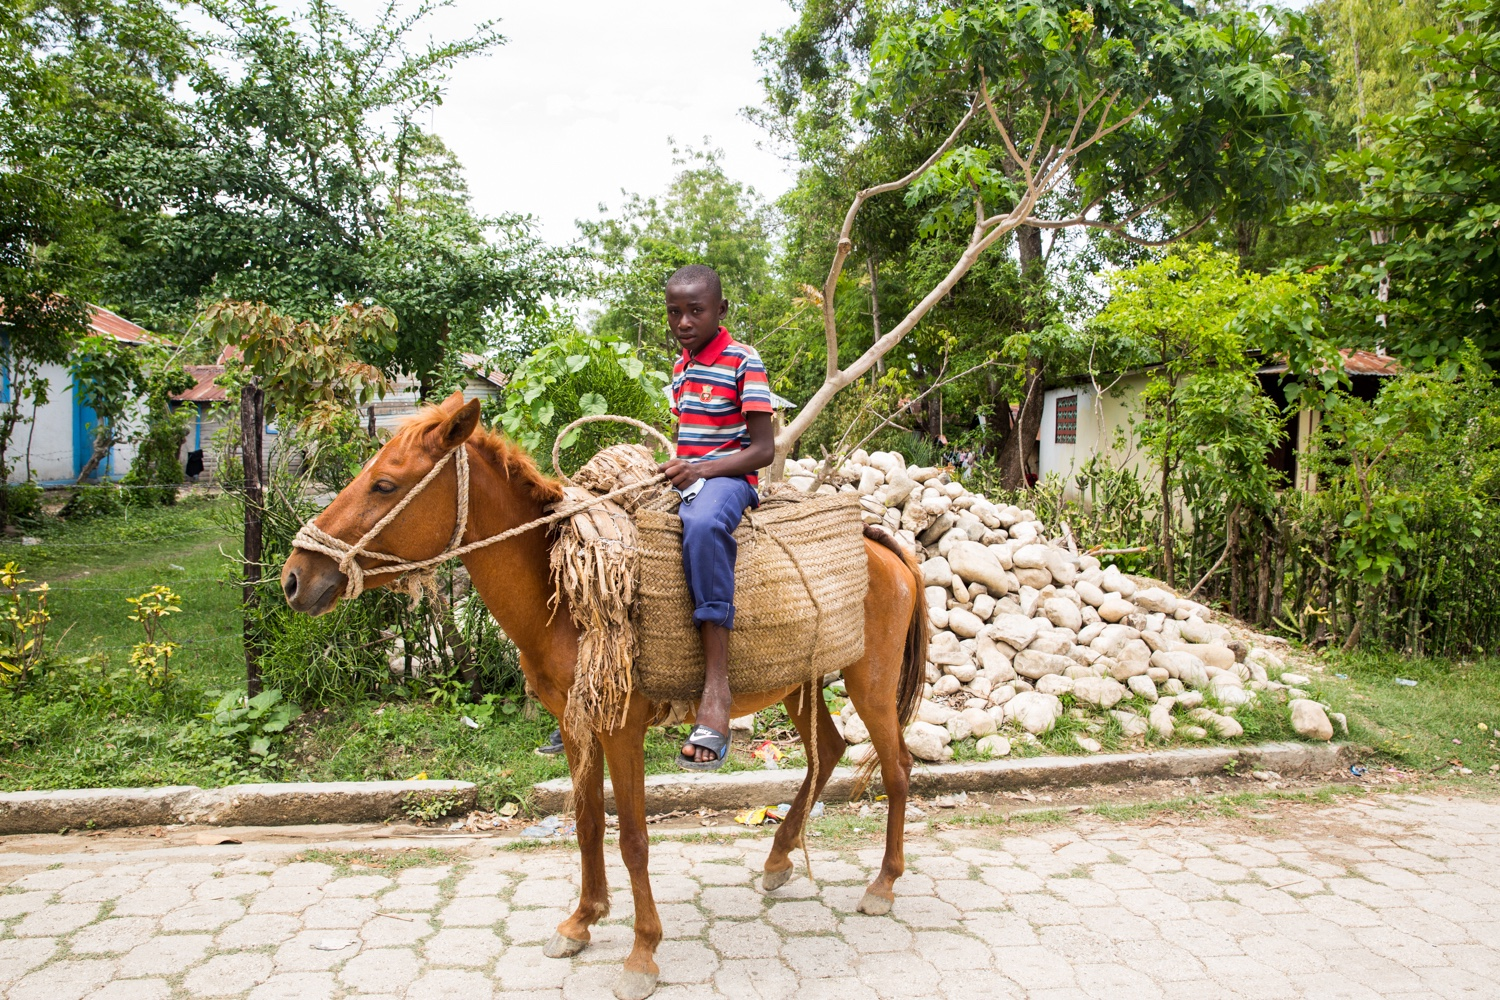 A young farmer on his horse in Central Plateau. Central Plateau is one of the poorest areas of Haiti. It borders the Dominican and most of this land is rural and off the grid.